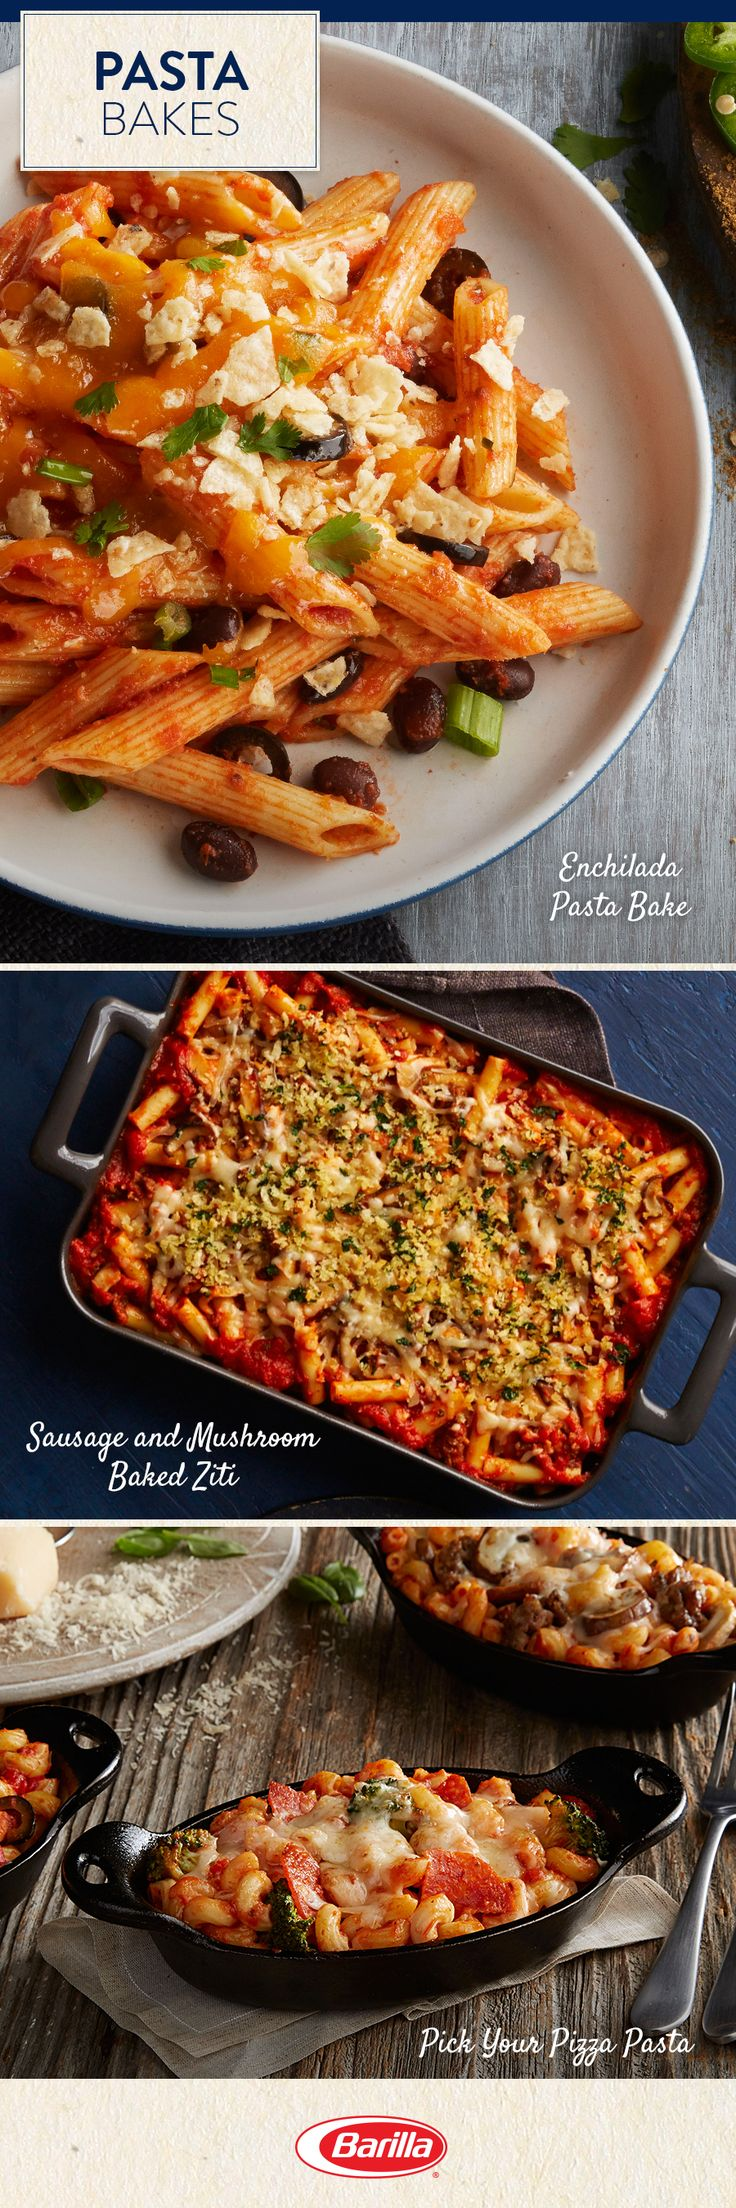 If you love hearty pasta bakes, save this pin to discover some of the ones we love most! With flavors of enchilada, sausage & mushroom and pizza, you're bound to find a favorite.